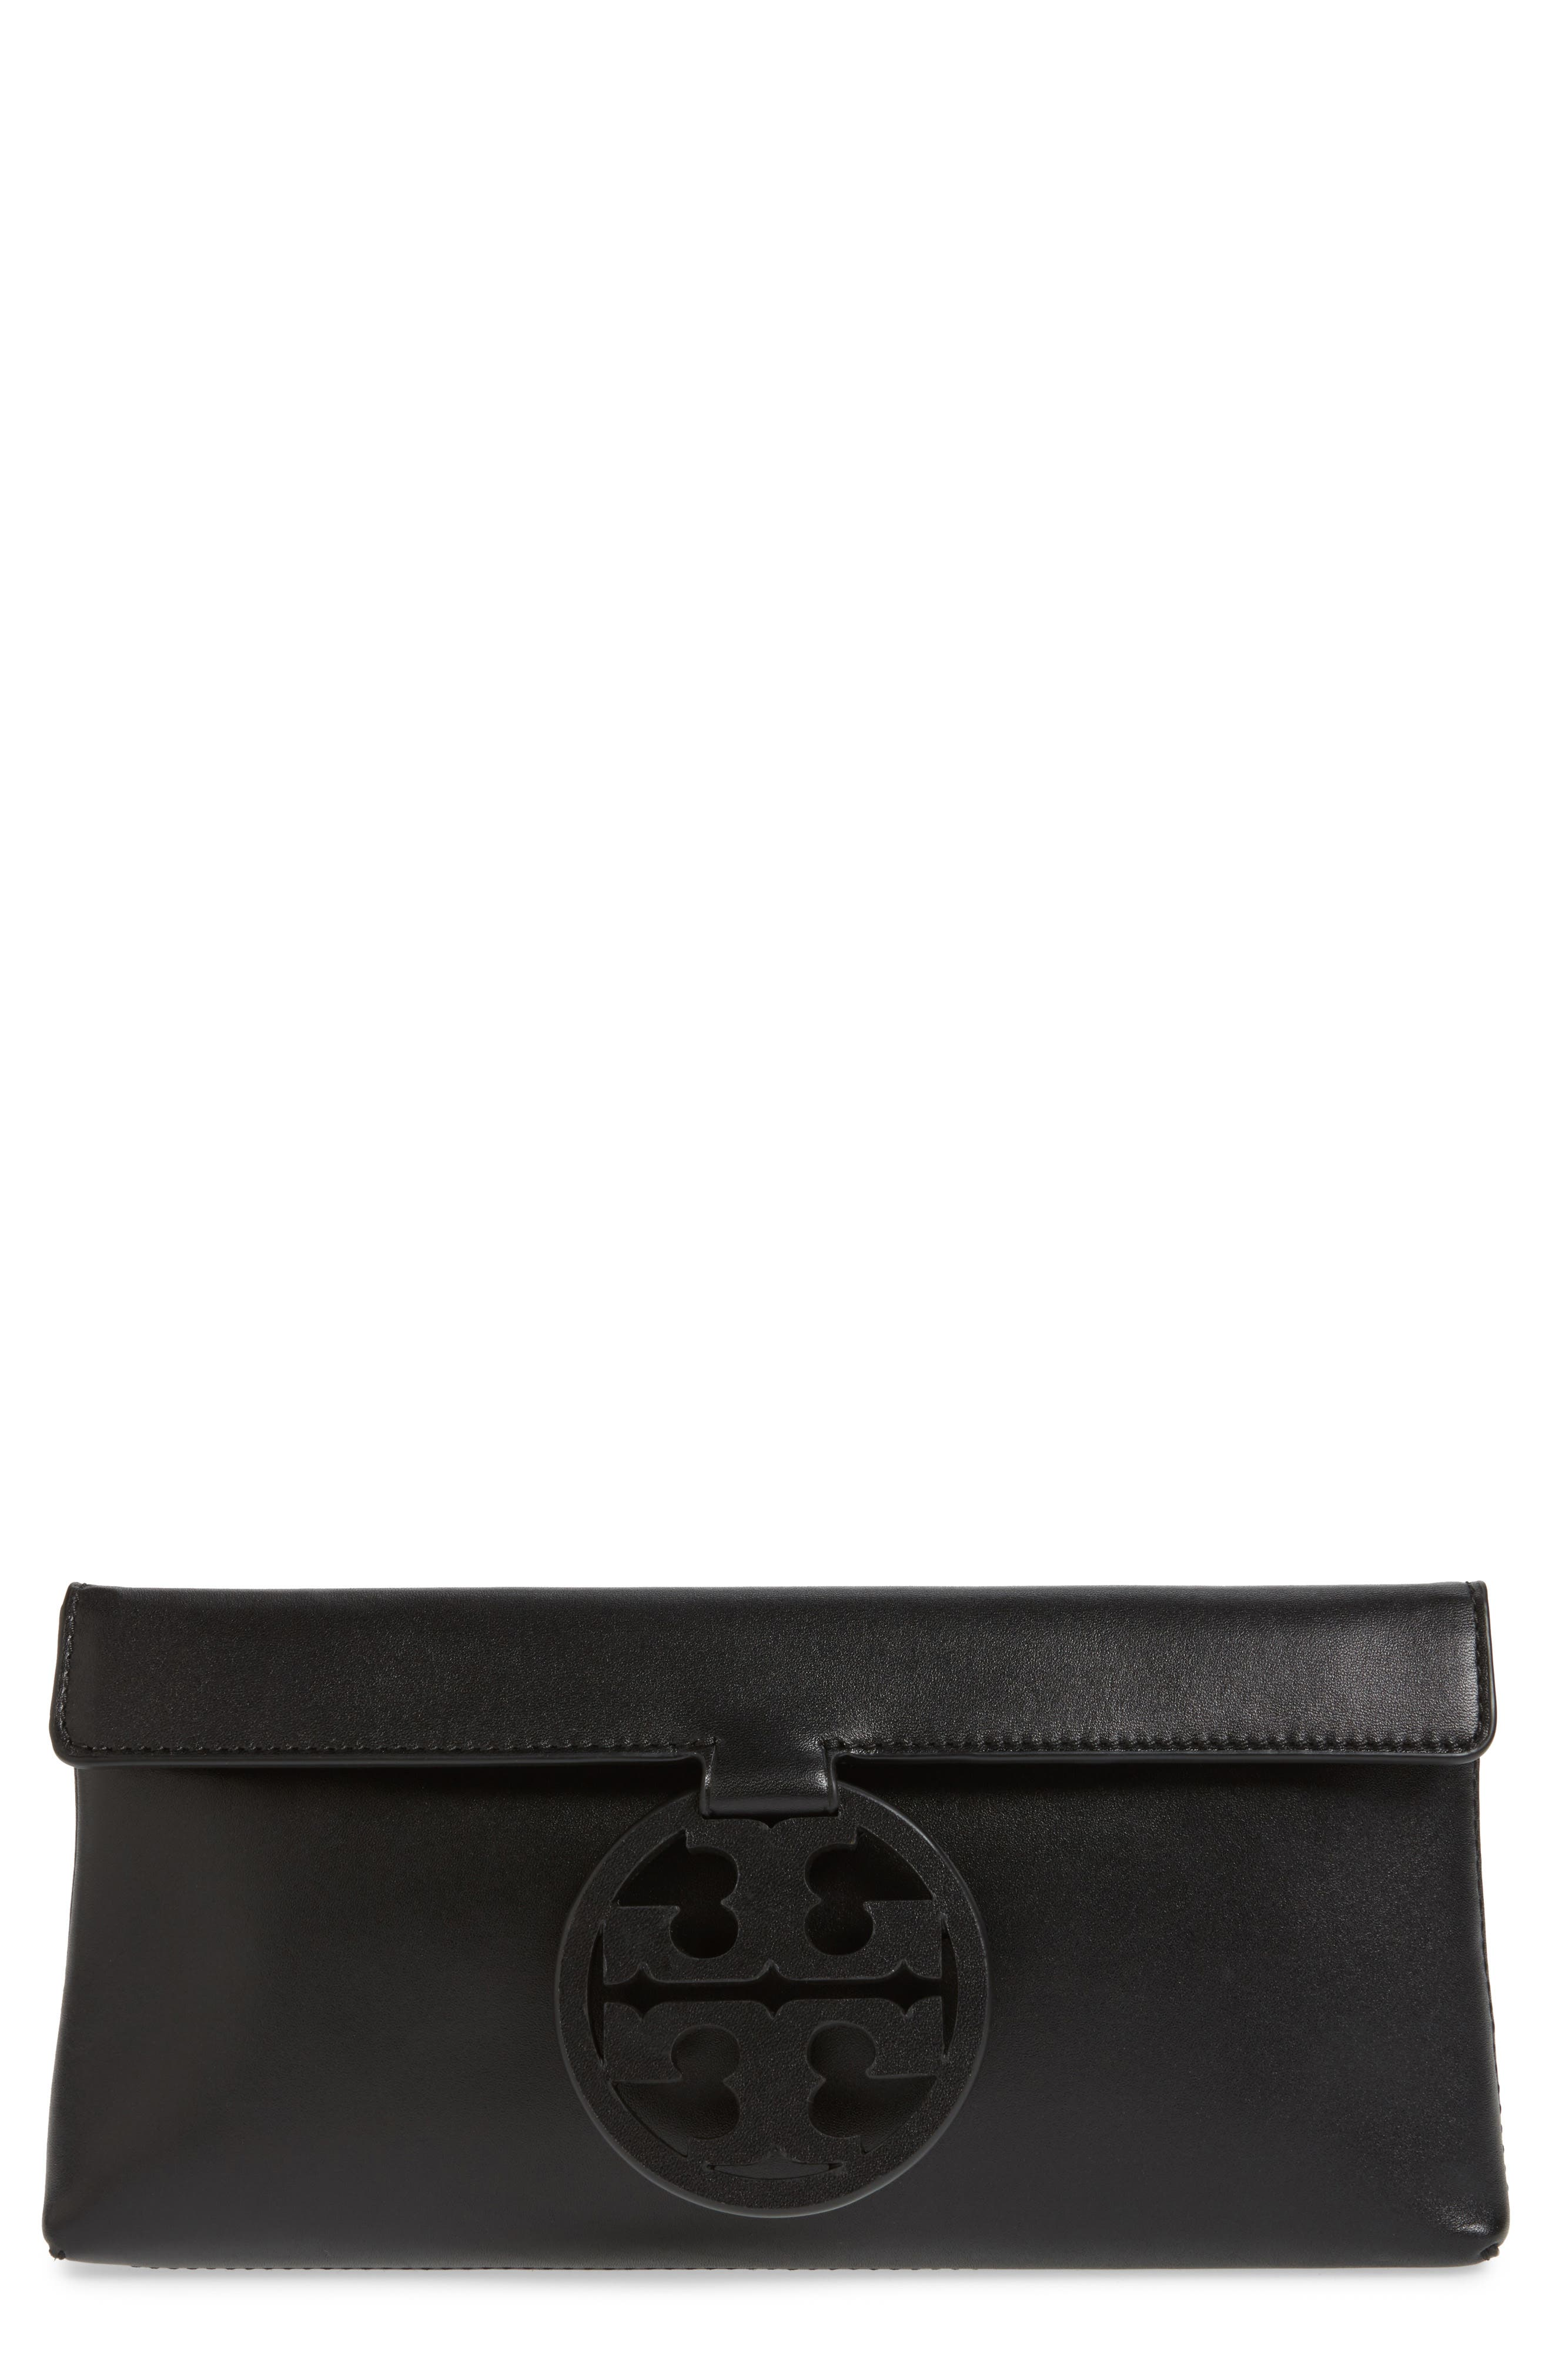 TORY BURCH Miller Leather Clutch, Main, color, BLACK